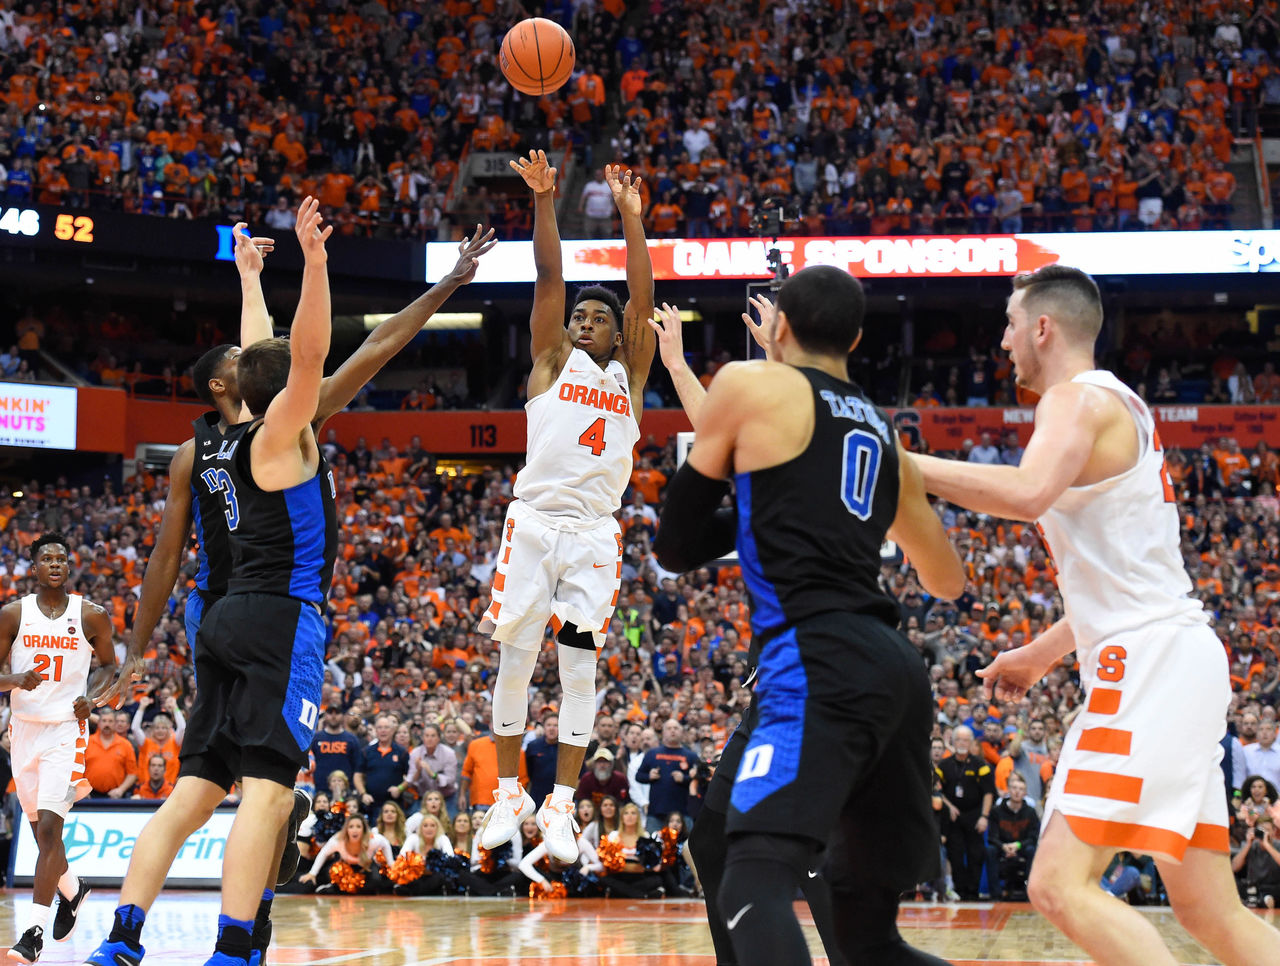 Cropped 2017 02 23t021046z 213589034 nocid rtrmadp 3 ncaa basketball duke at syracuse